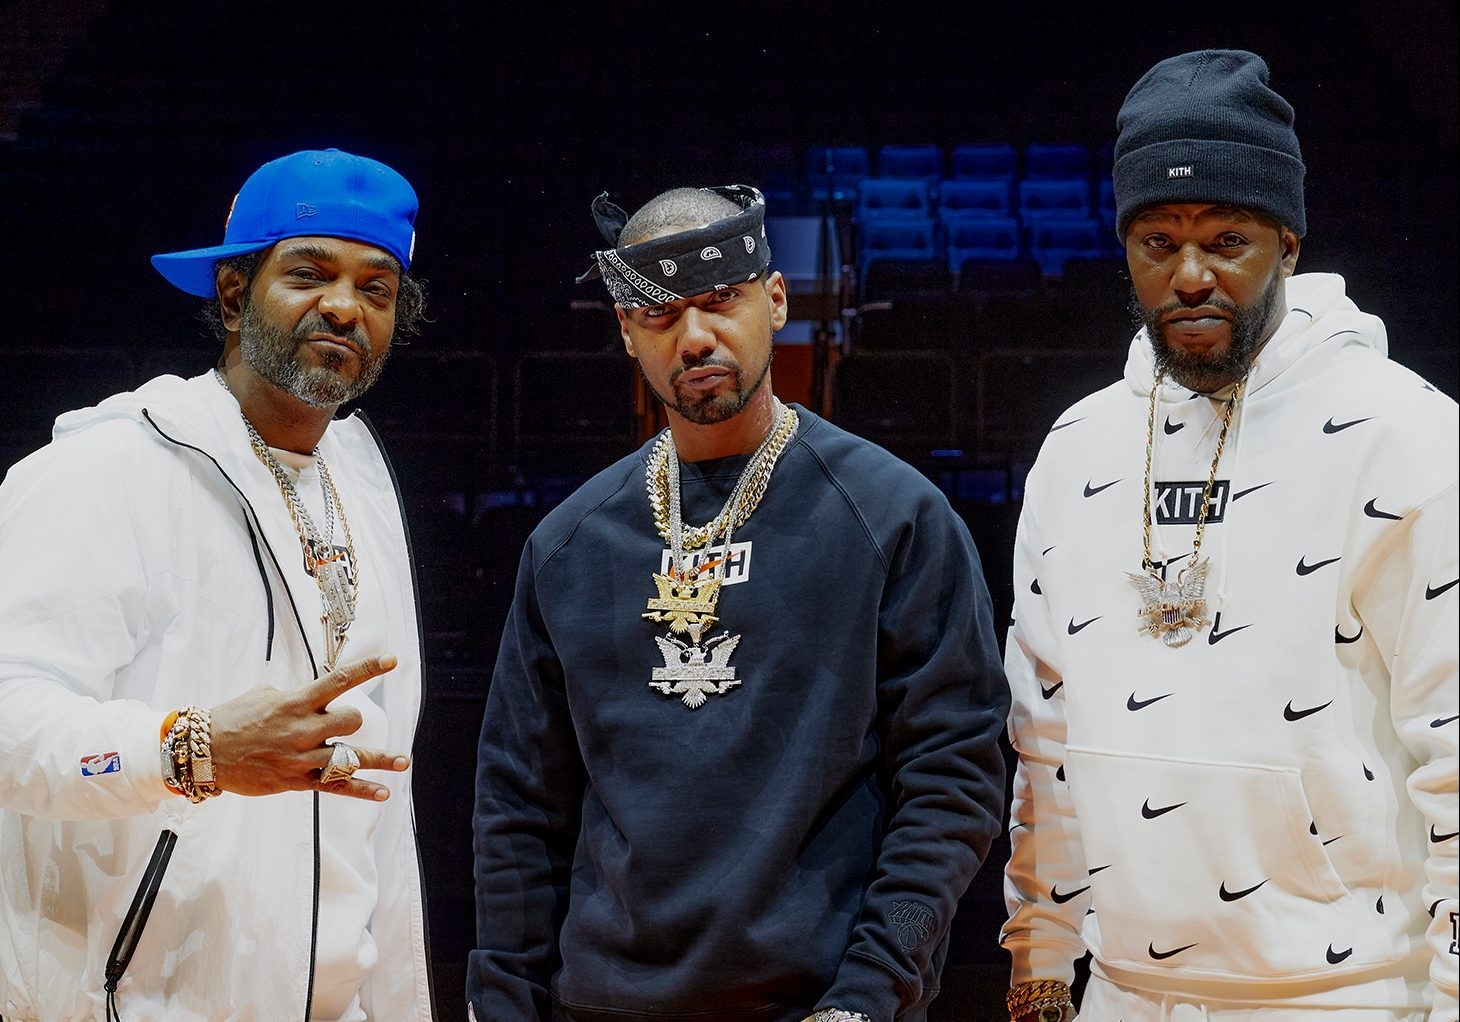 Dipset rappers Jim Jones, Juelz Santana and Cam'ron in the Kith & Nike for New York Knicks capsule